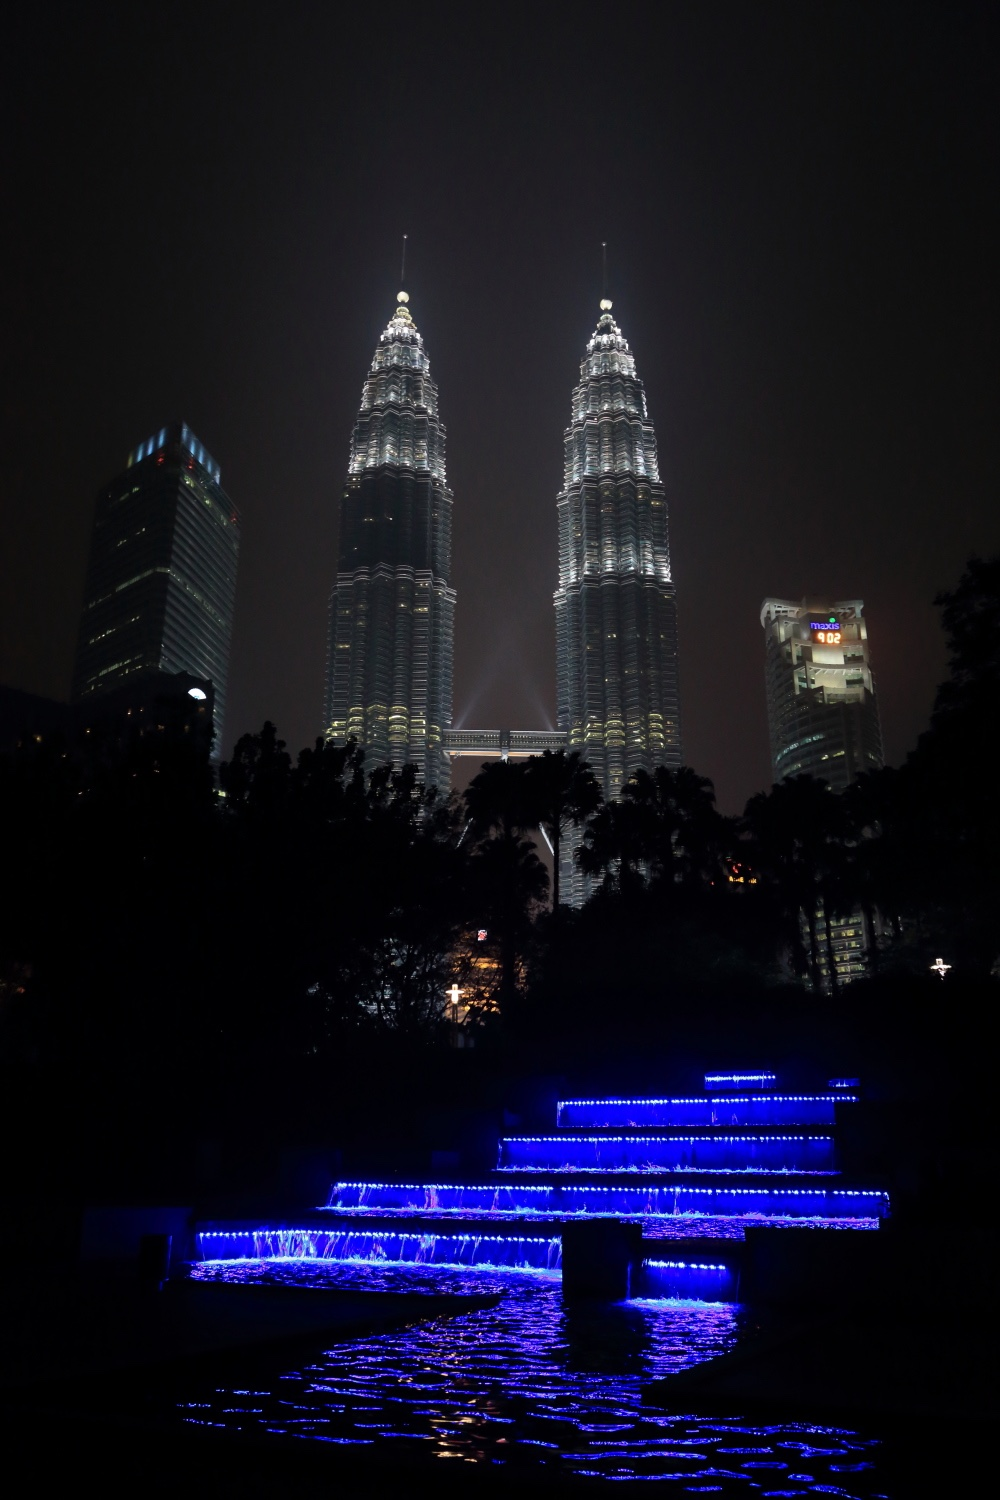 Petronas Towers.    Kuala Lumpur, Malaysia. 03 March 2014. 1/30 s, f/7.1, -1 2/3 EV, ISO 4000, 28 mm, EOS 6D + EF 28-300L